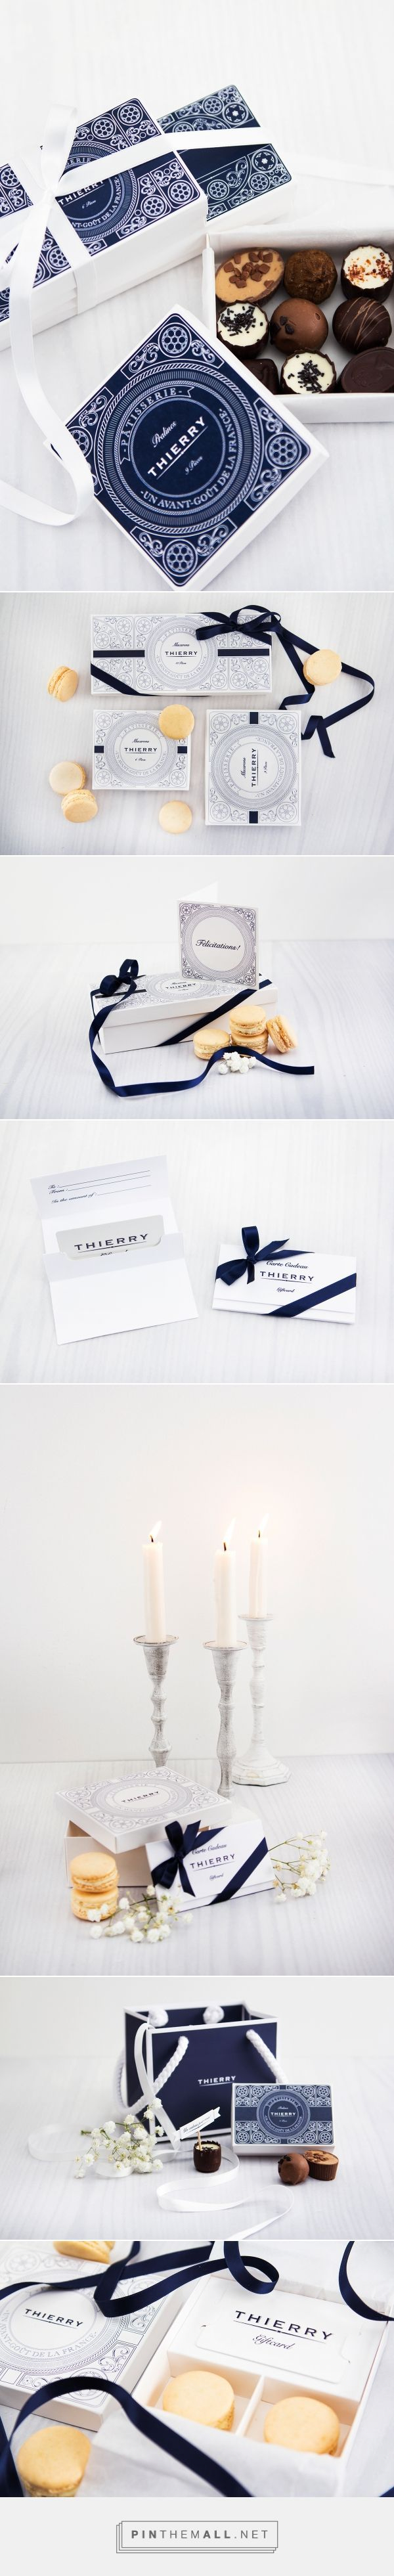 Branding, graphic design and packaging for Thierry on Behance by Linnea Djurberg Karlstad, Sweden curated by Packaging Diva PD. A new…